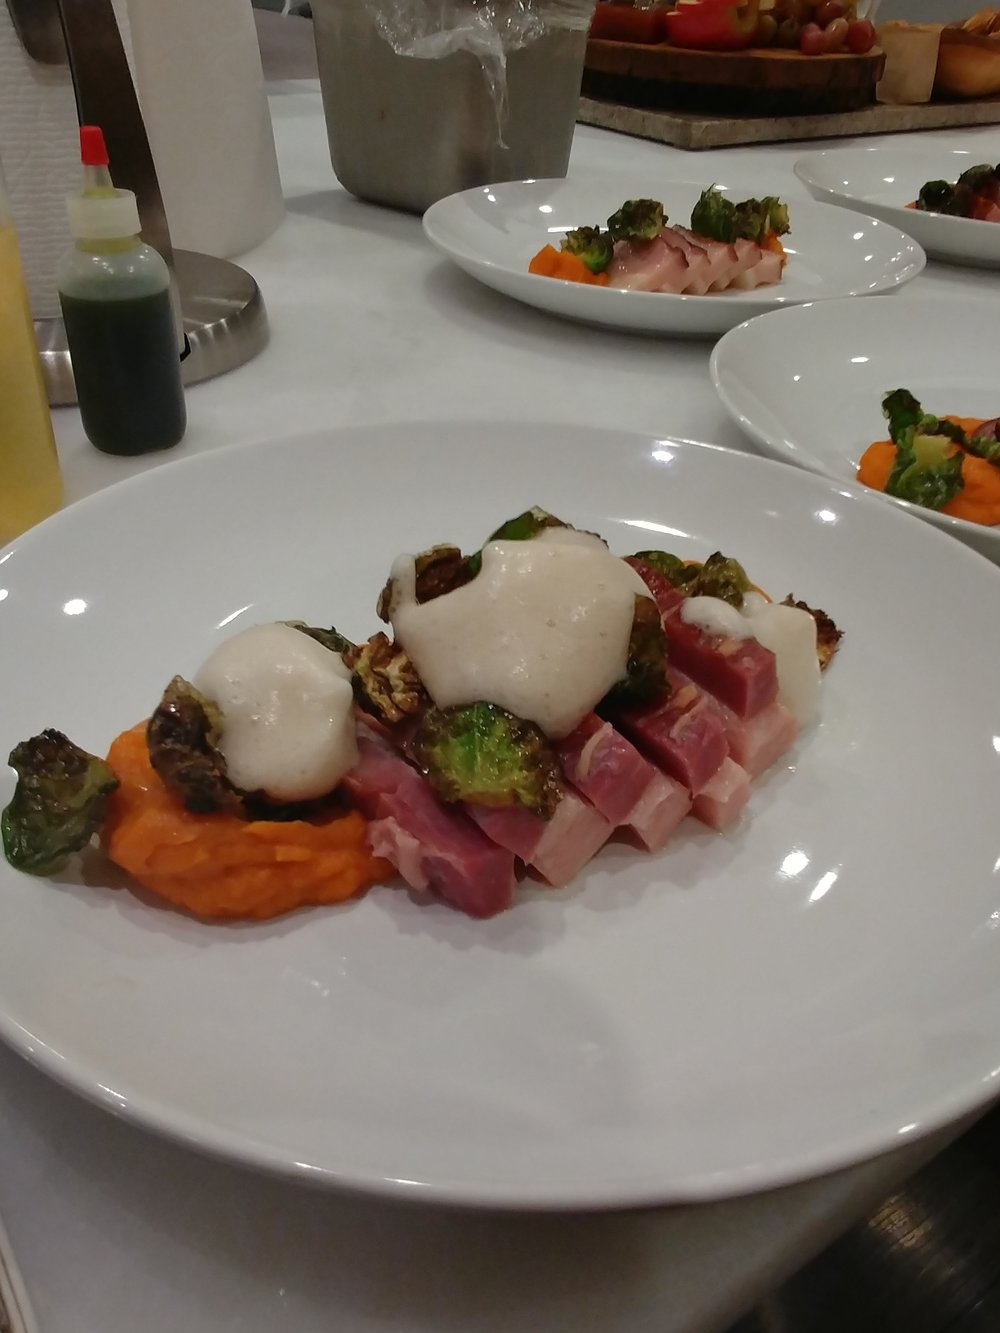 24hr. SOUS VIDE BACON Yam puree, Crispy Brussels Sprout Leaves, Spiced Cider - Rose Water Foam